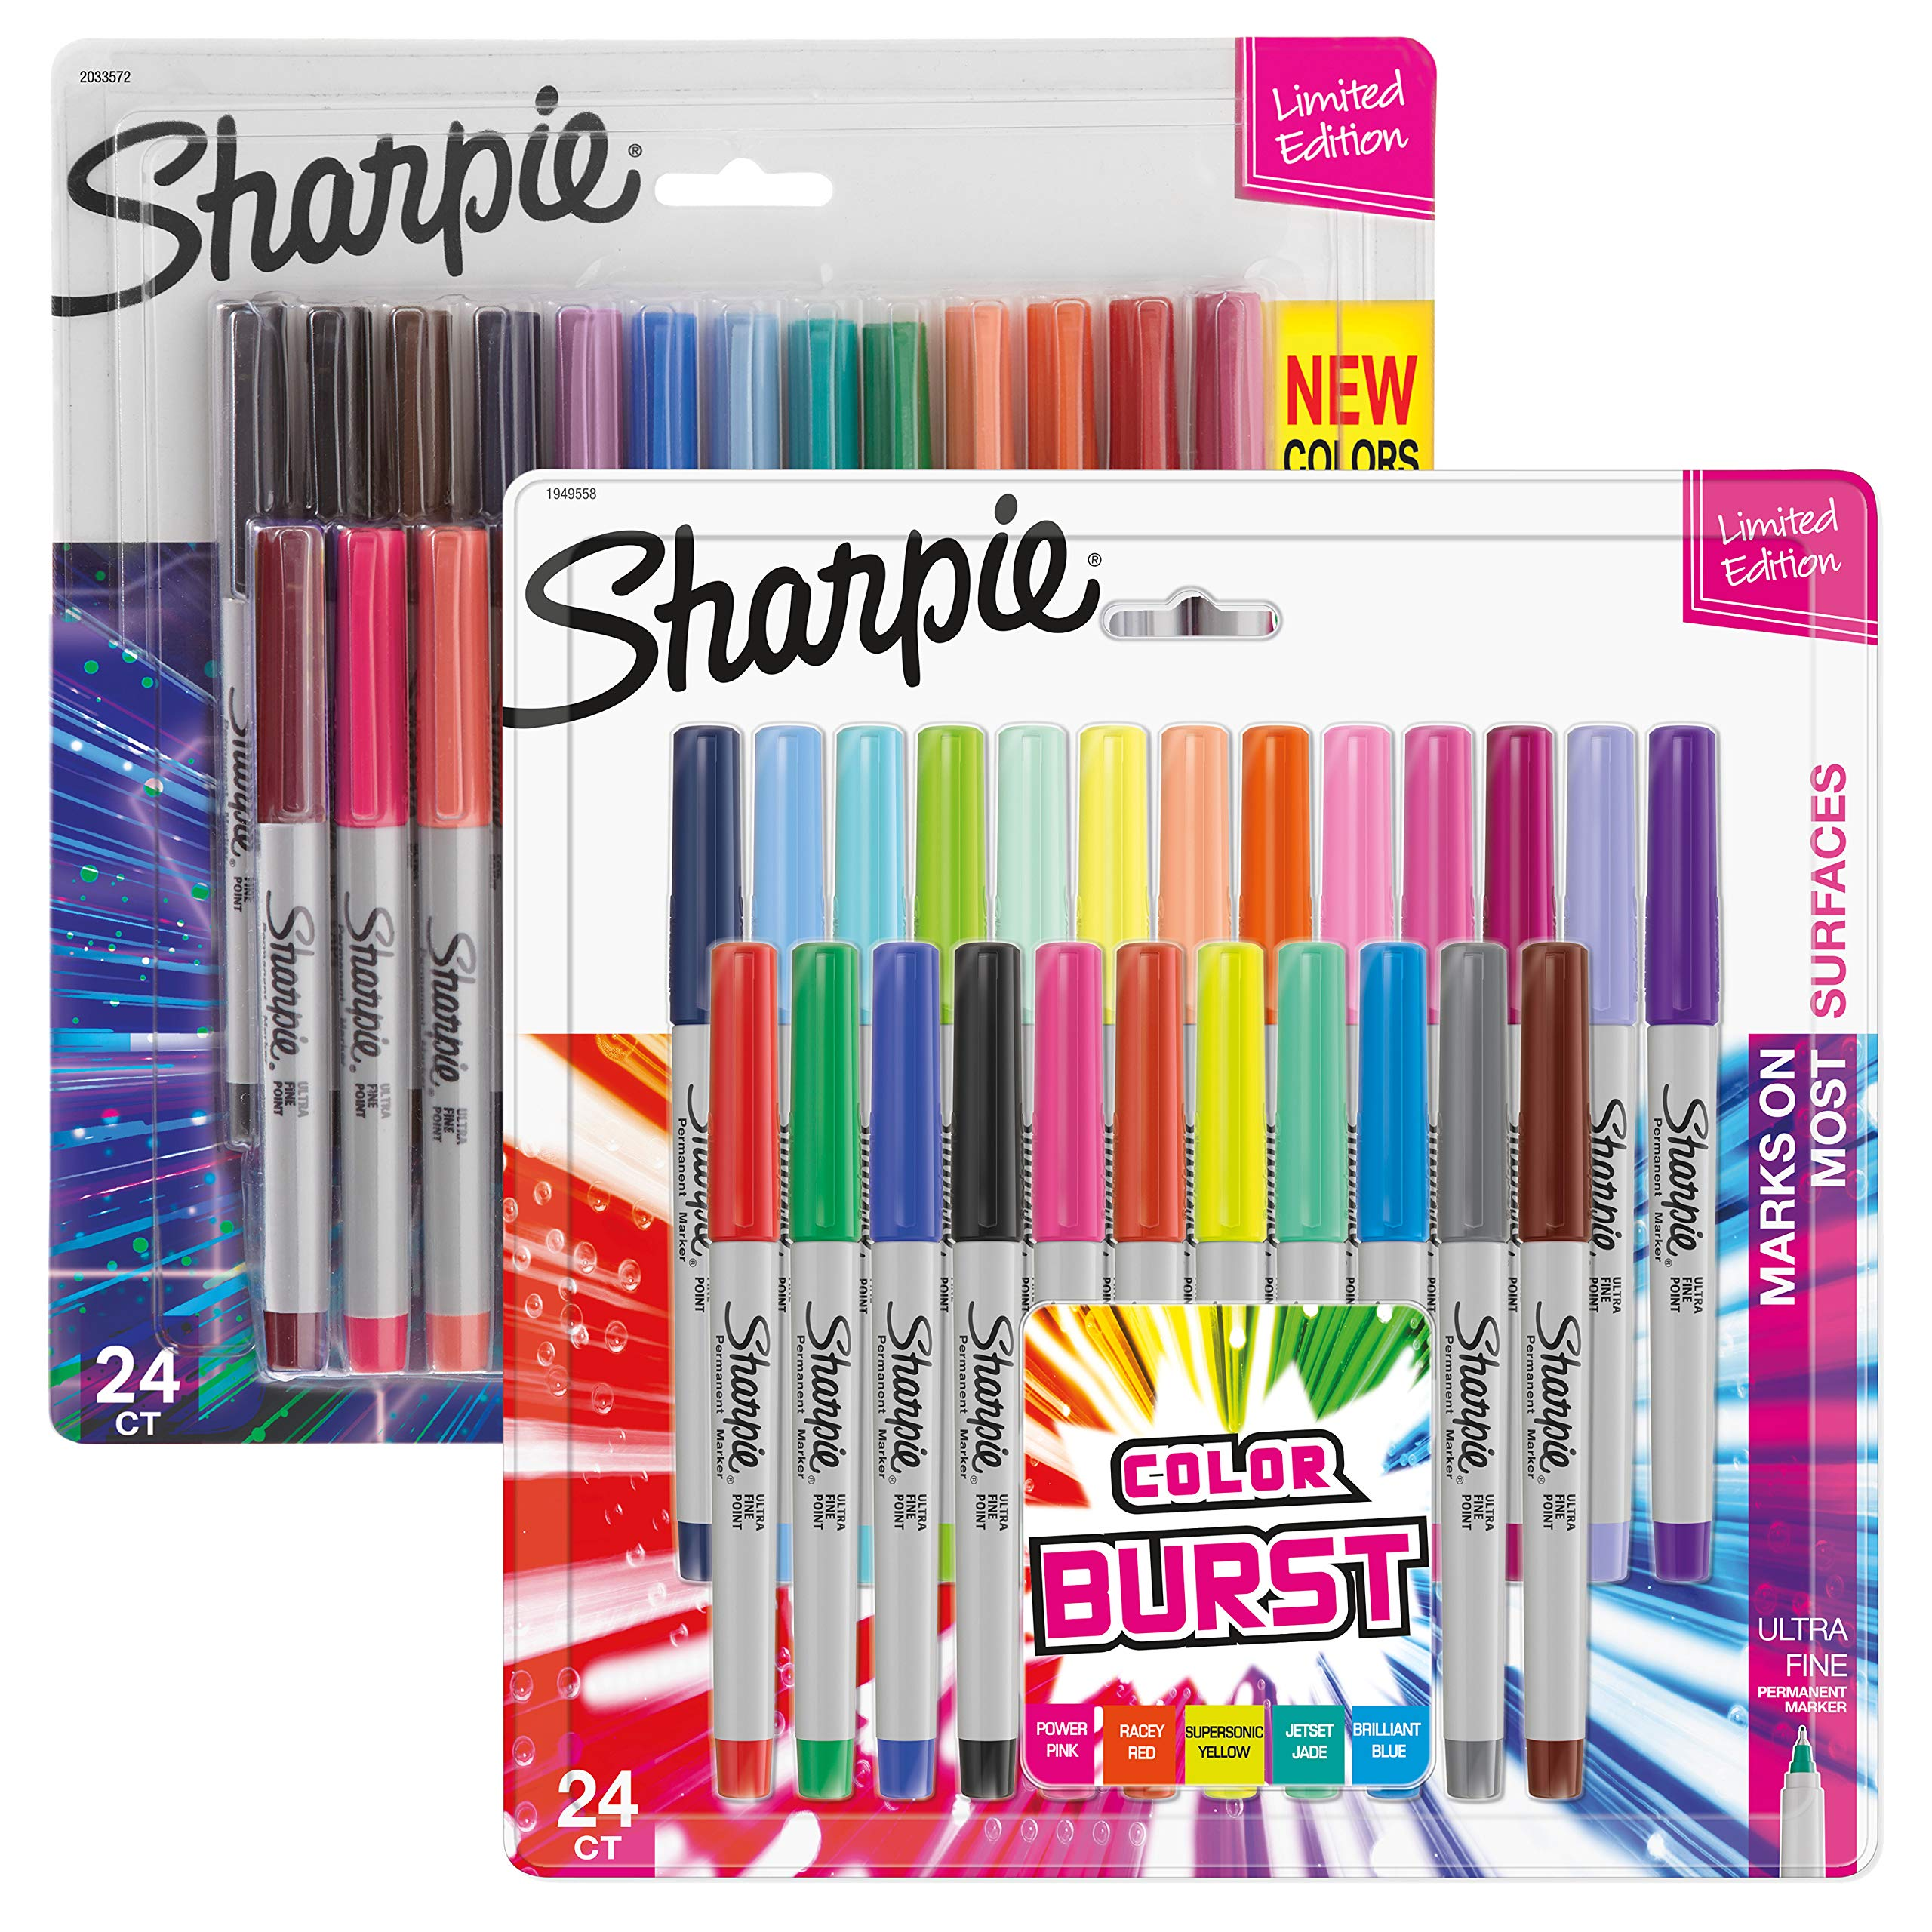 Sharpie Permanent Markers, 24-Count Cosmic Color & 24-Count Colorburst Ultra-Fine Point Markers, Total of 48 by Sharpie (Image #1)